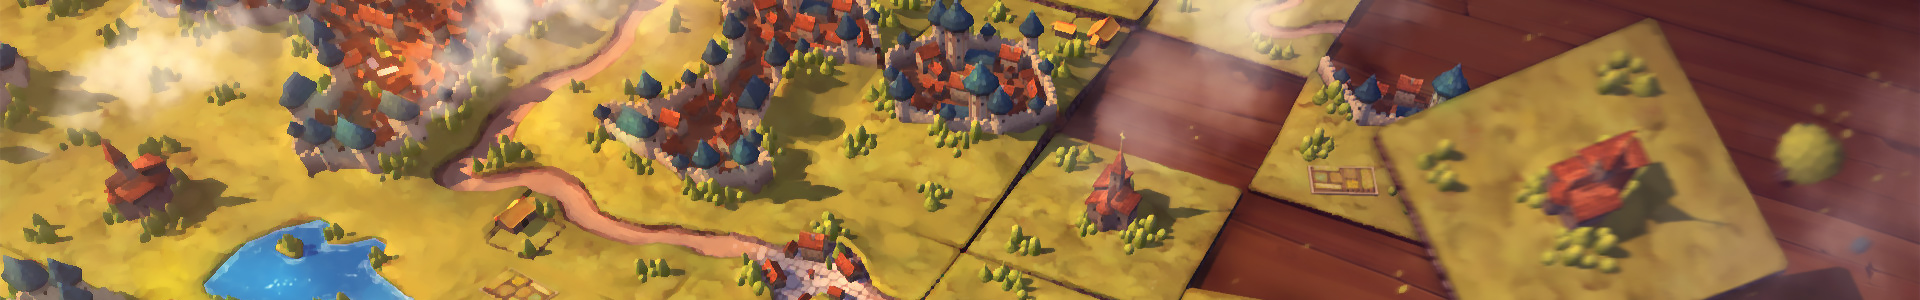 Banner media of Carcassonne Tiles and Tactics video game.